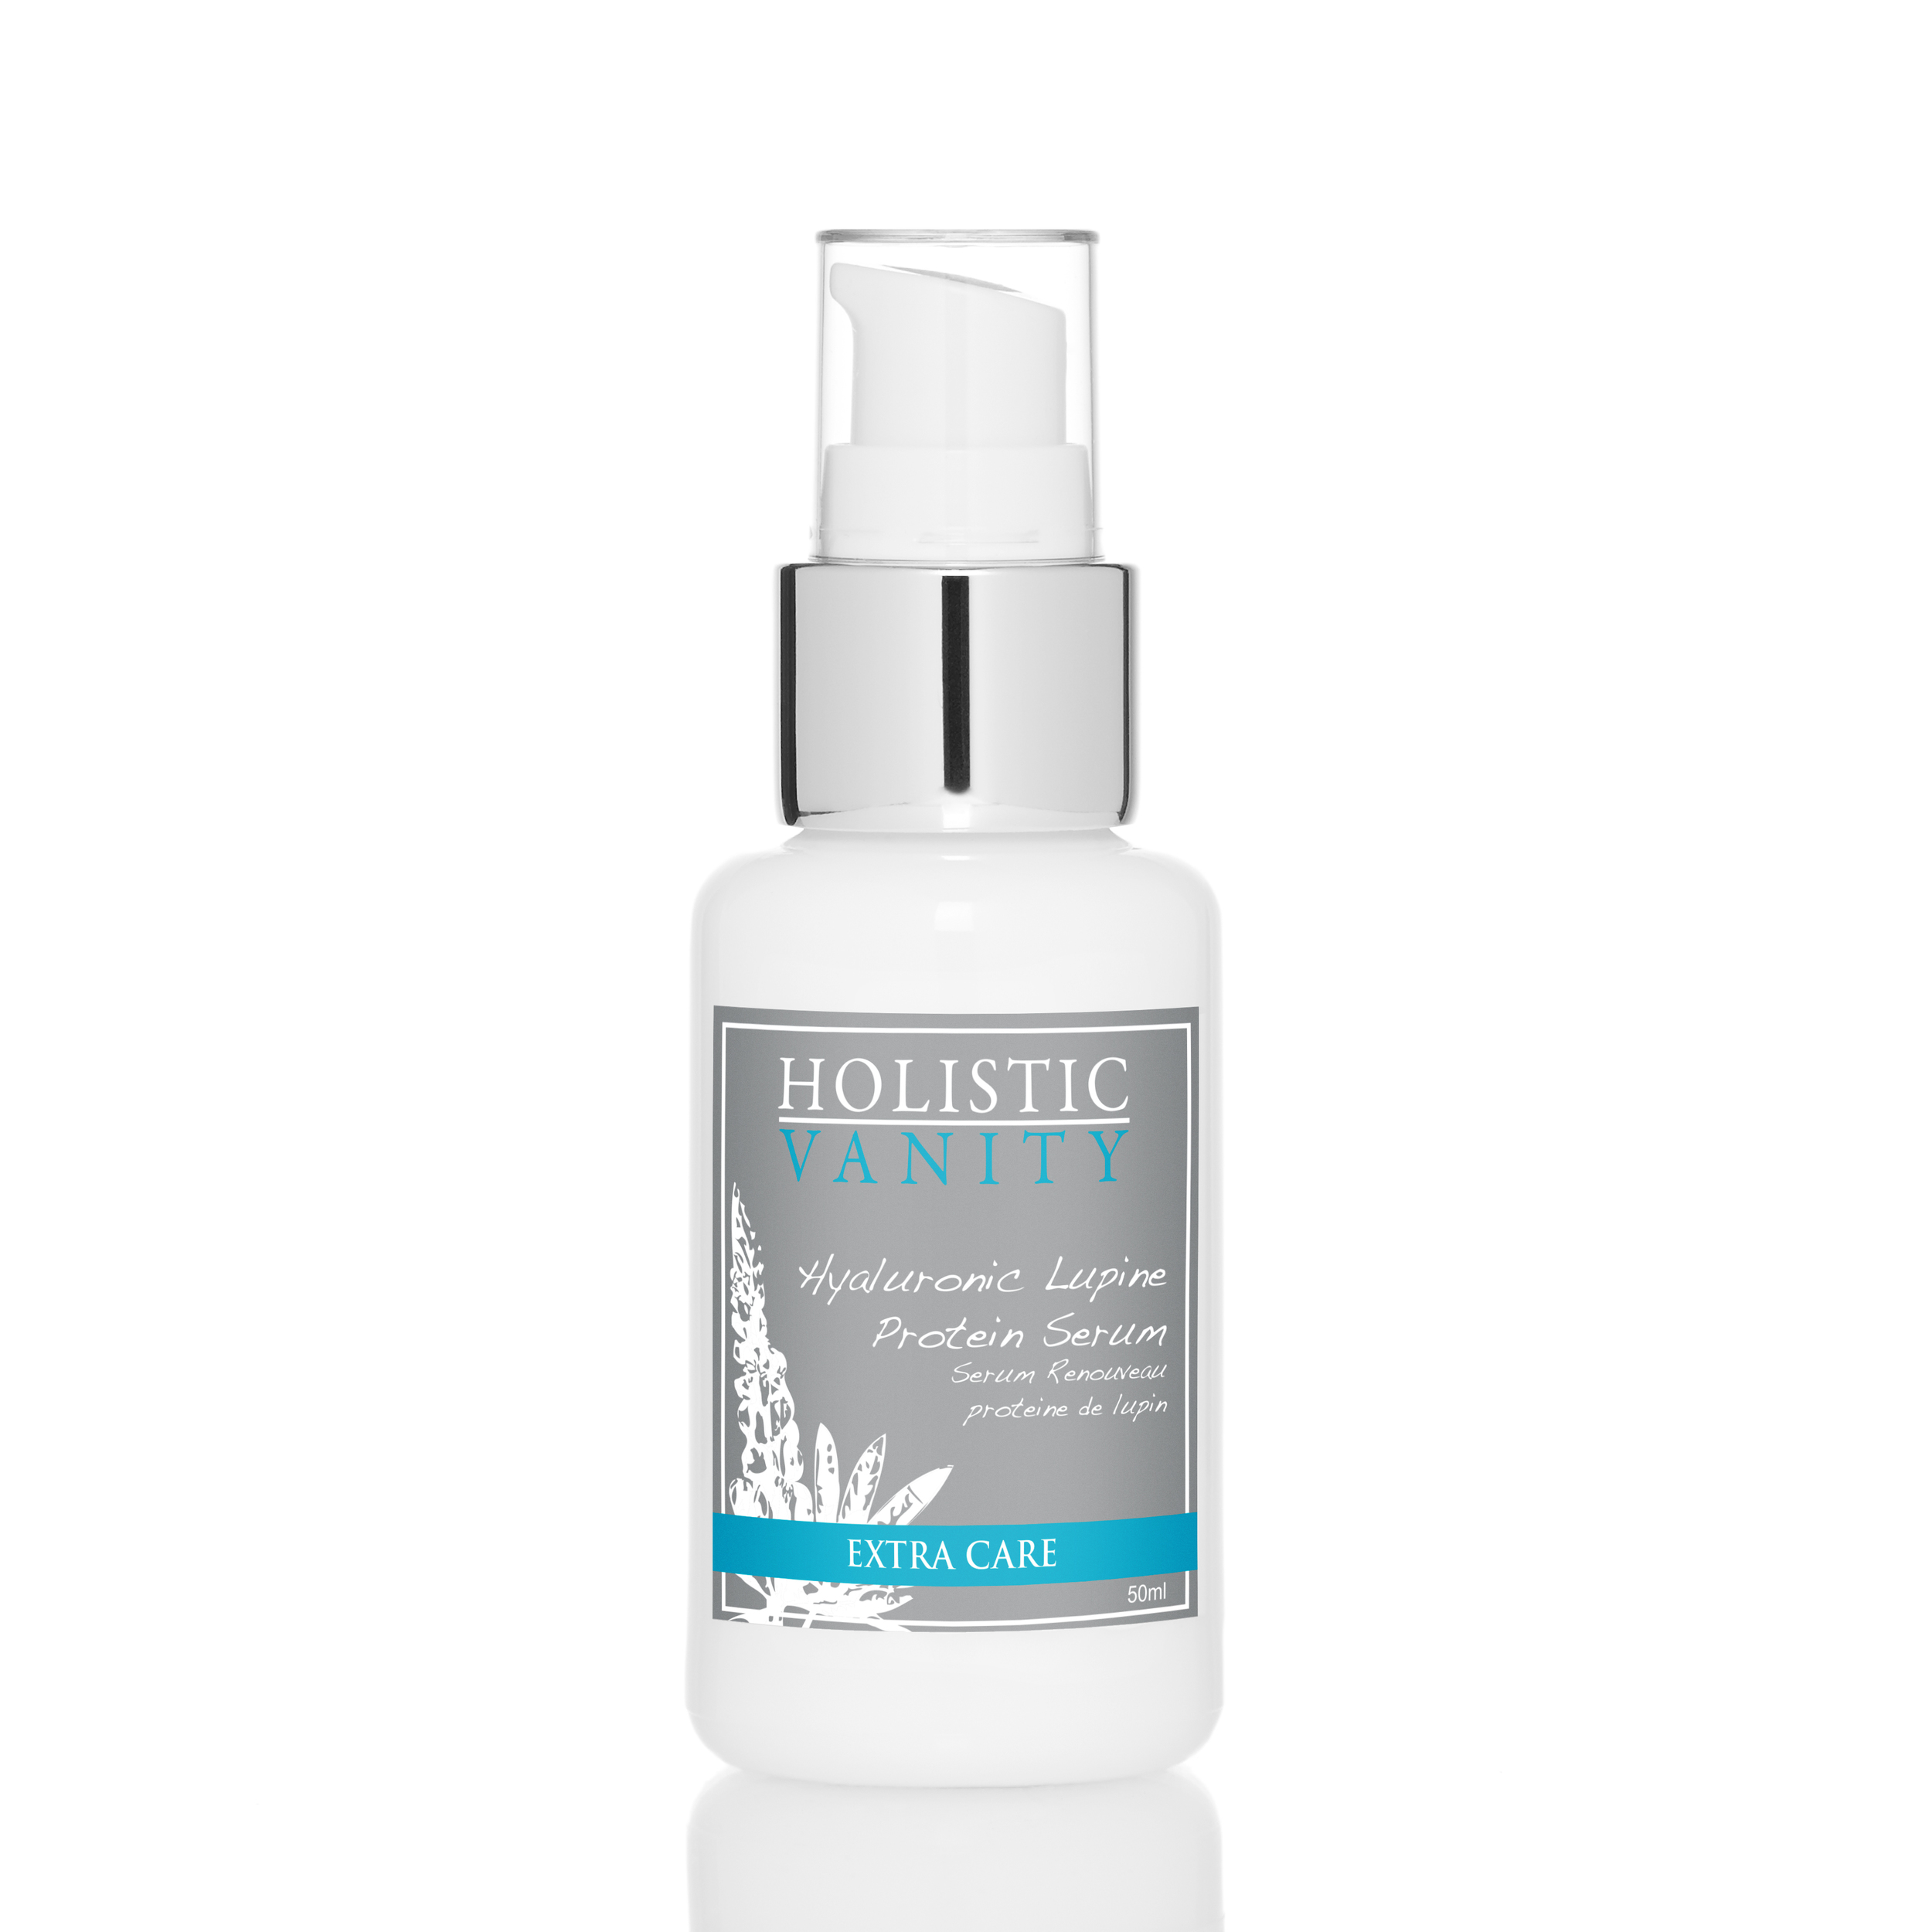 Holistic Vanity Extra Care Hyaluronic Lupine Protein System $88